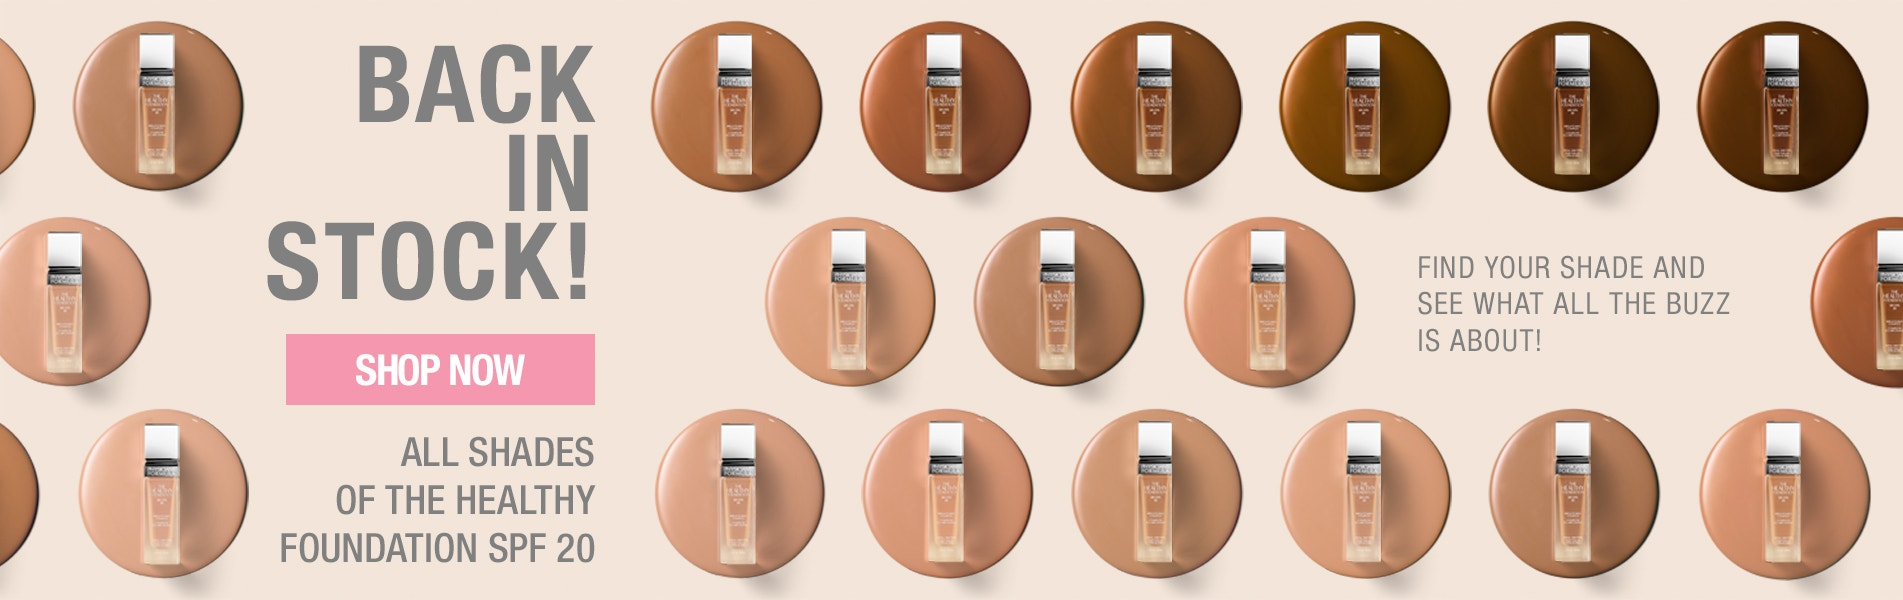 Healthy Foundation Back In Stock - Shop All Shades From Light To Deep